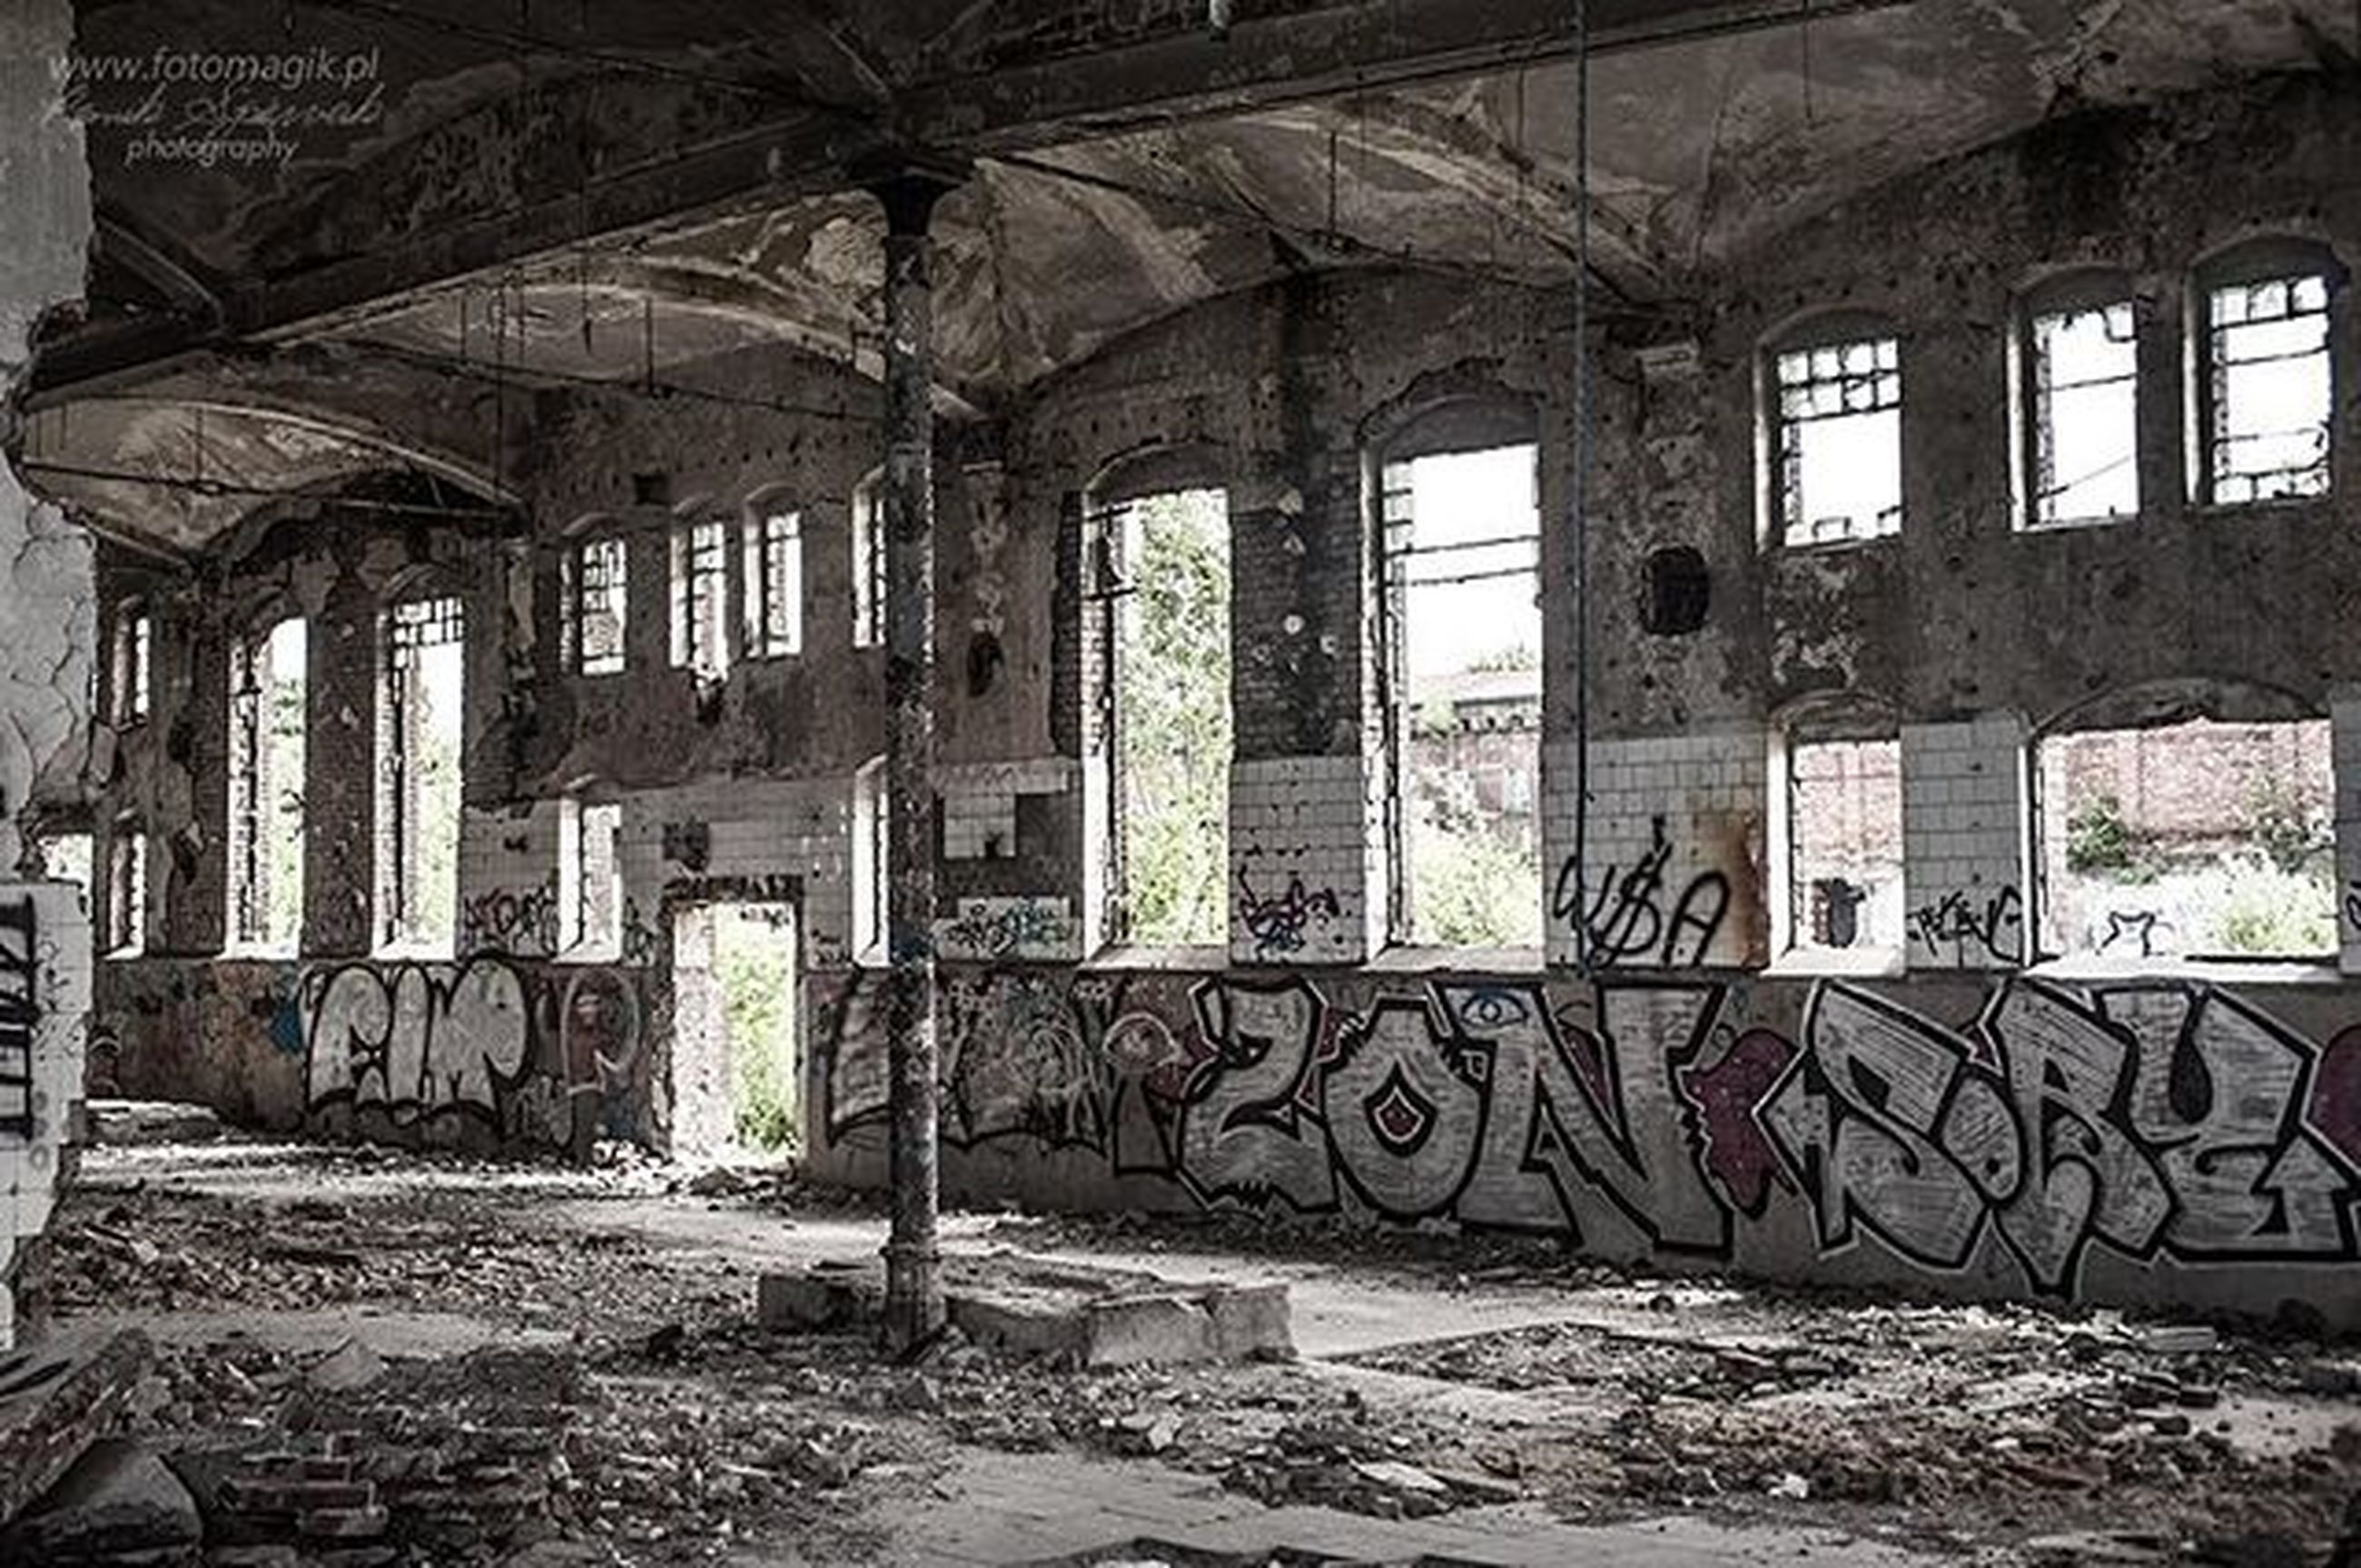 architecture, indoors, built structure, abandoned, obsolete, damaged, run-down, deterioration, window, interior, old, messy, bad condition, weathered, ruined, broken, building, destruction, old ruin, day